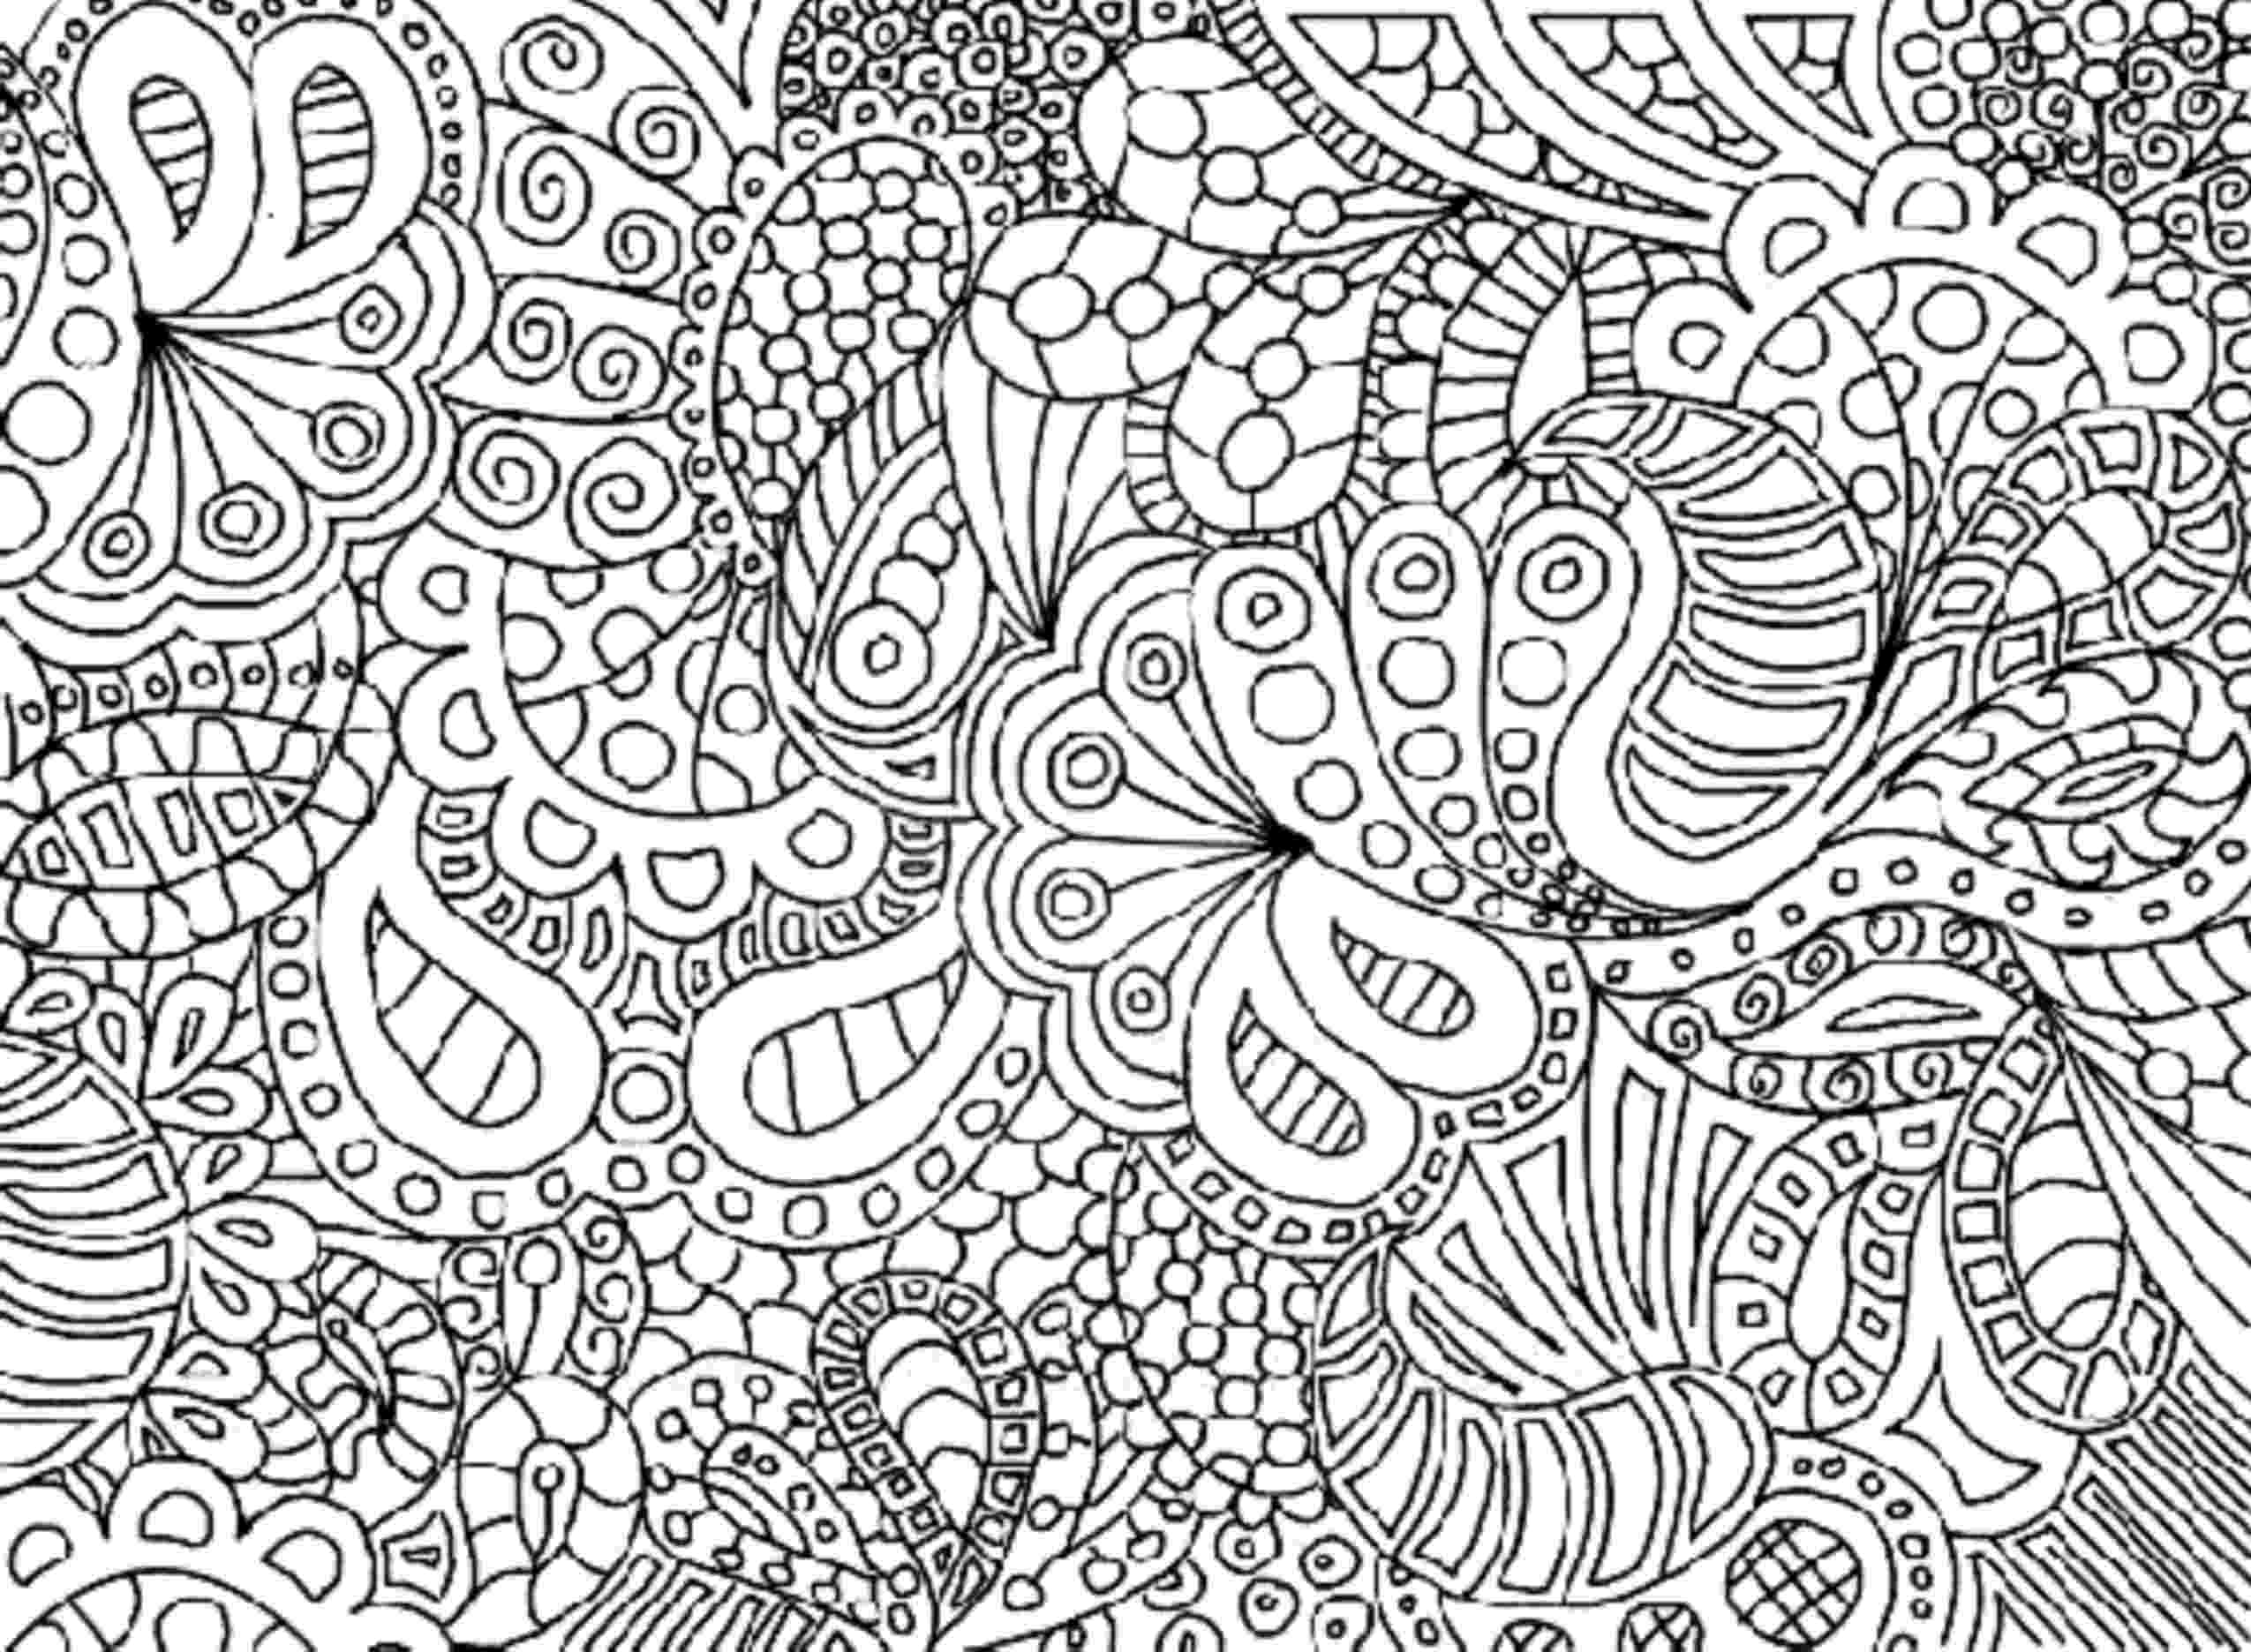 printable difficult coloring pages printable difficult coloring pages coloring home printable pages difficult coloring